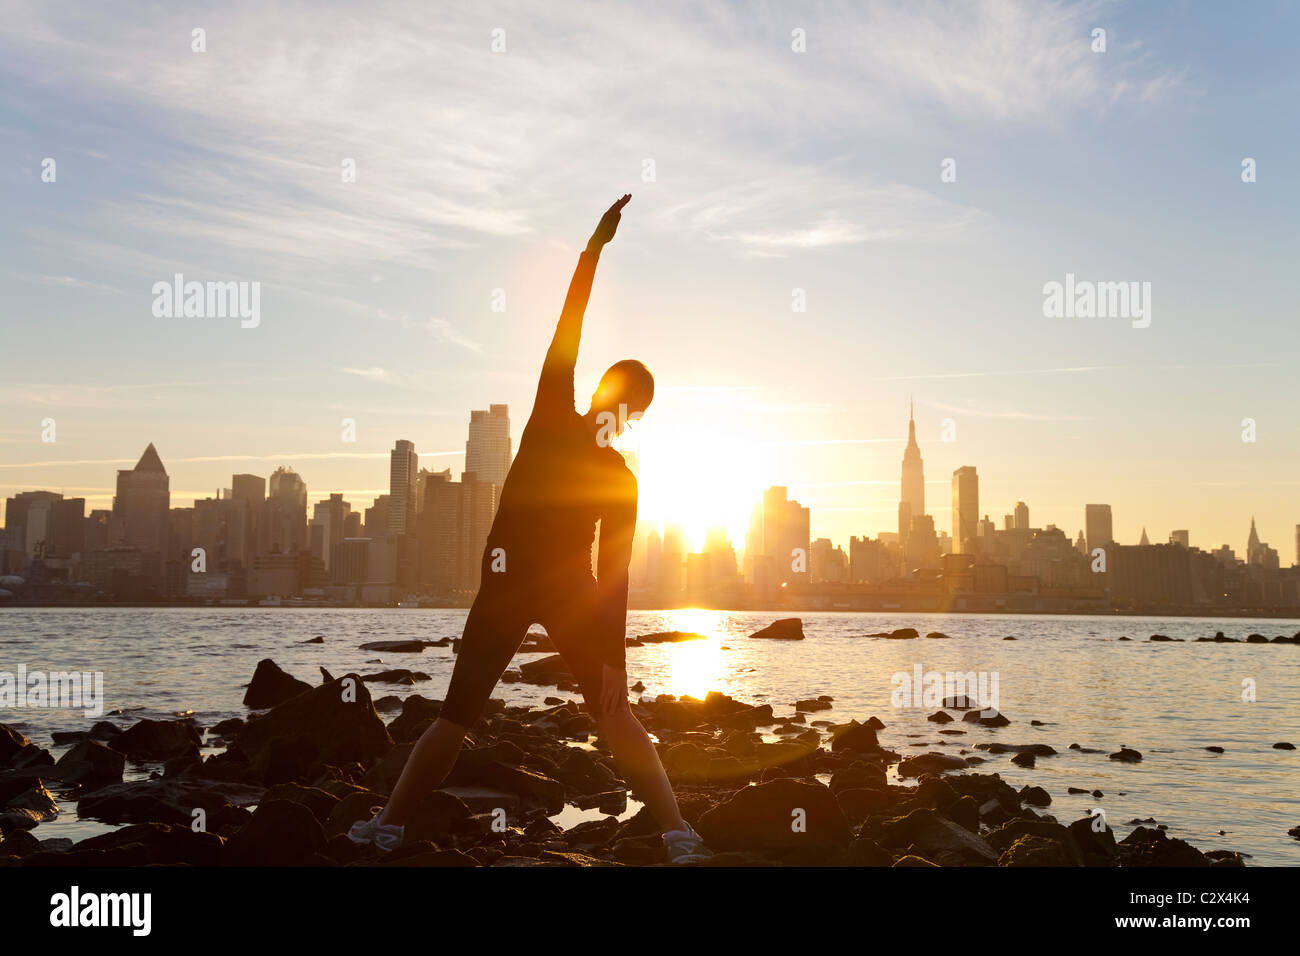 Ein Frau Läufer stretching in einer Yogaposition vor der Skyline von Manhattan, New York City, USA, am Dawn Sonnenaufgang. Stockfoto